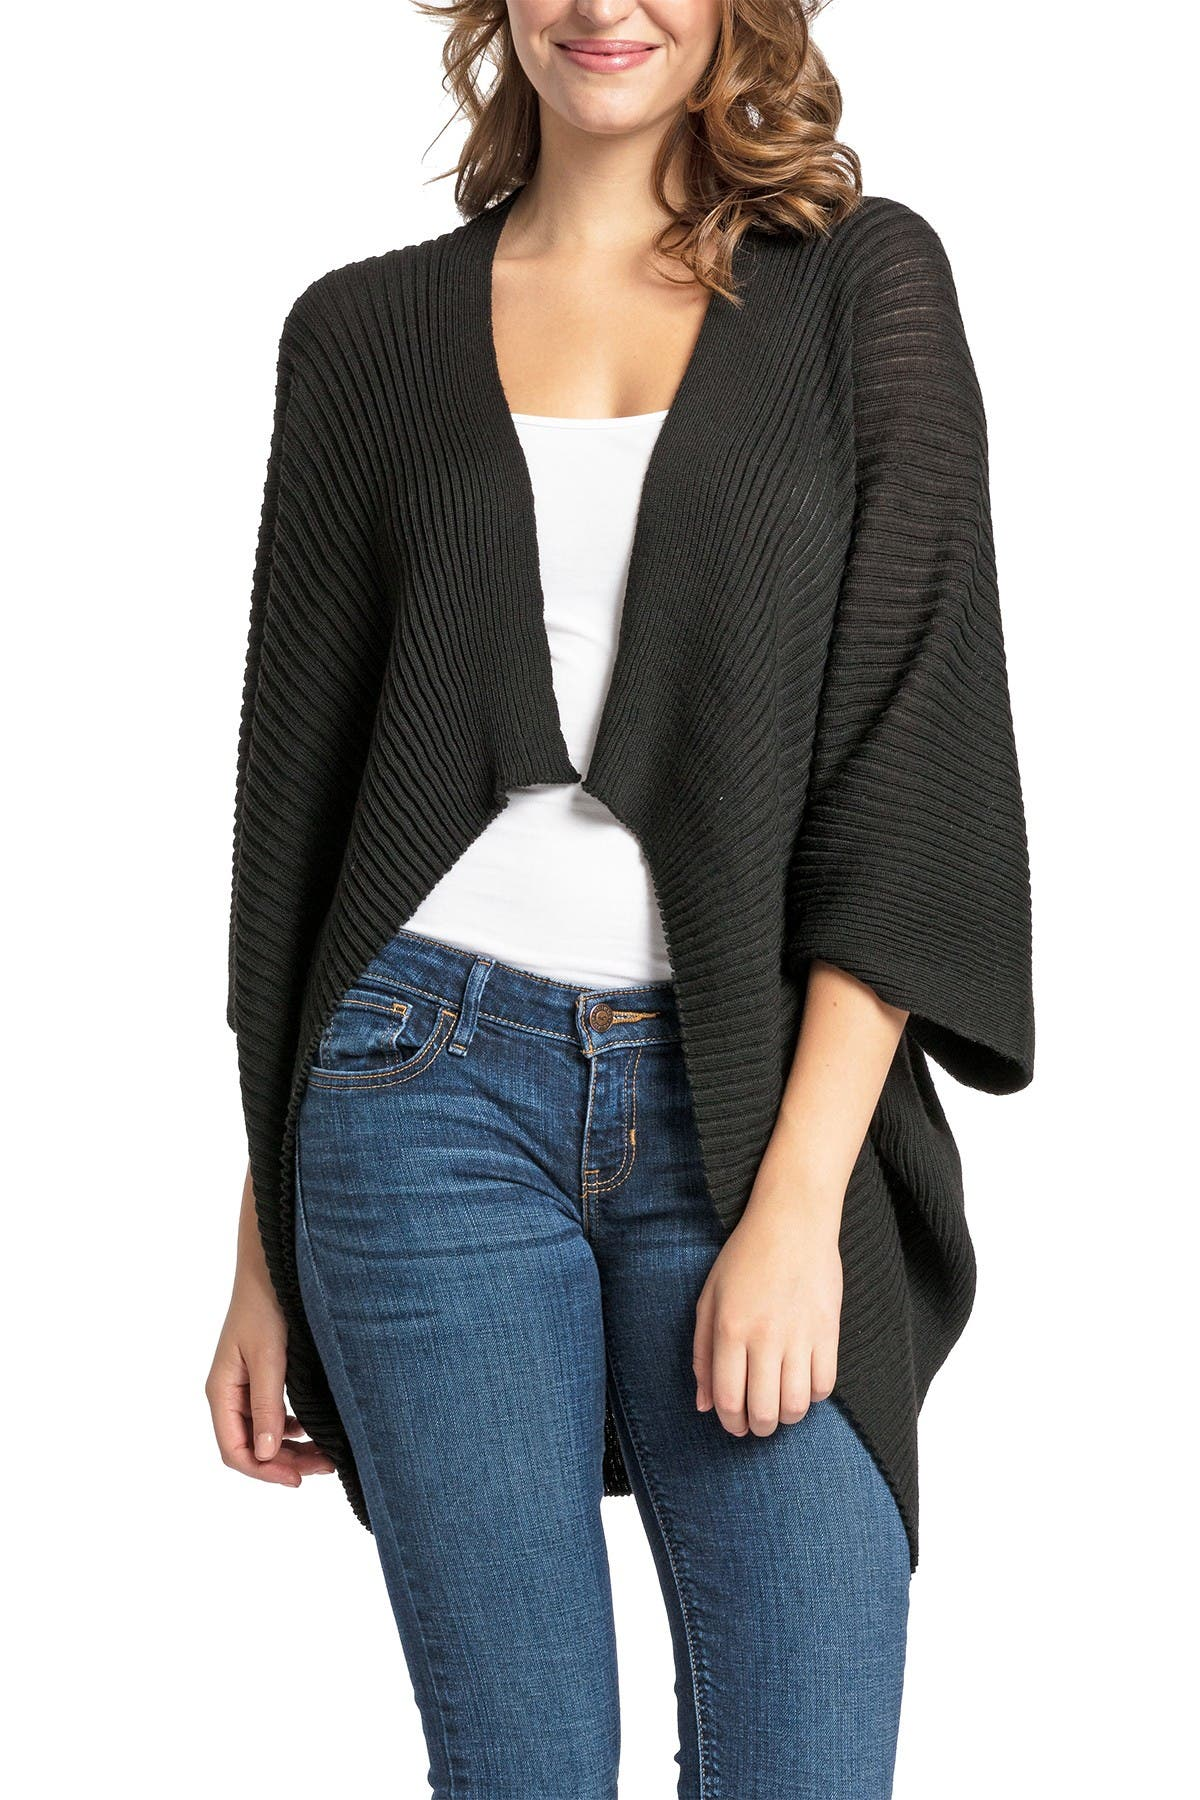 Image of SAVE THE OCEAN Ribbed Recycled Knit Kimono